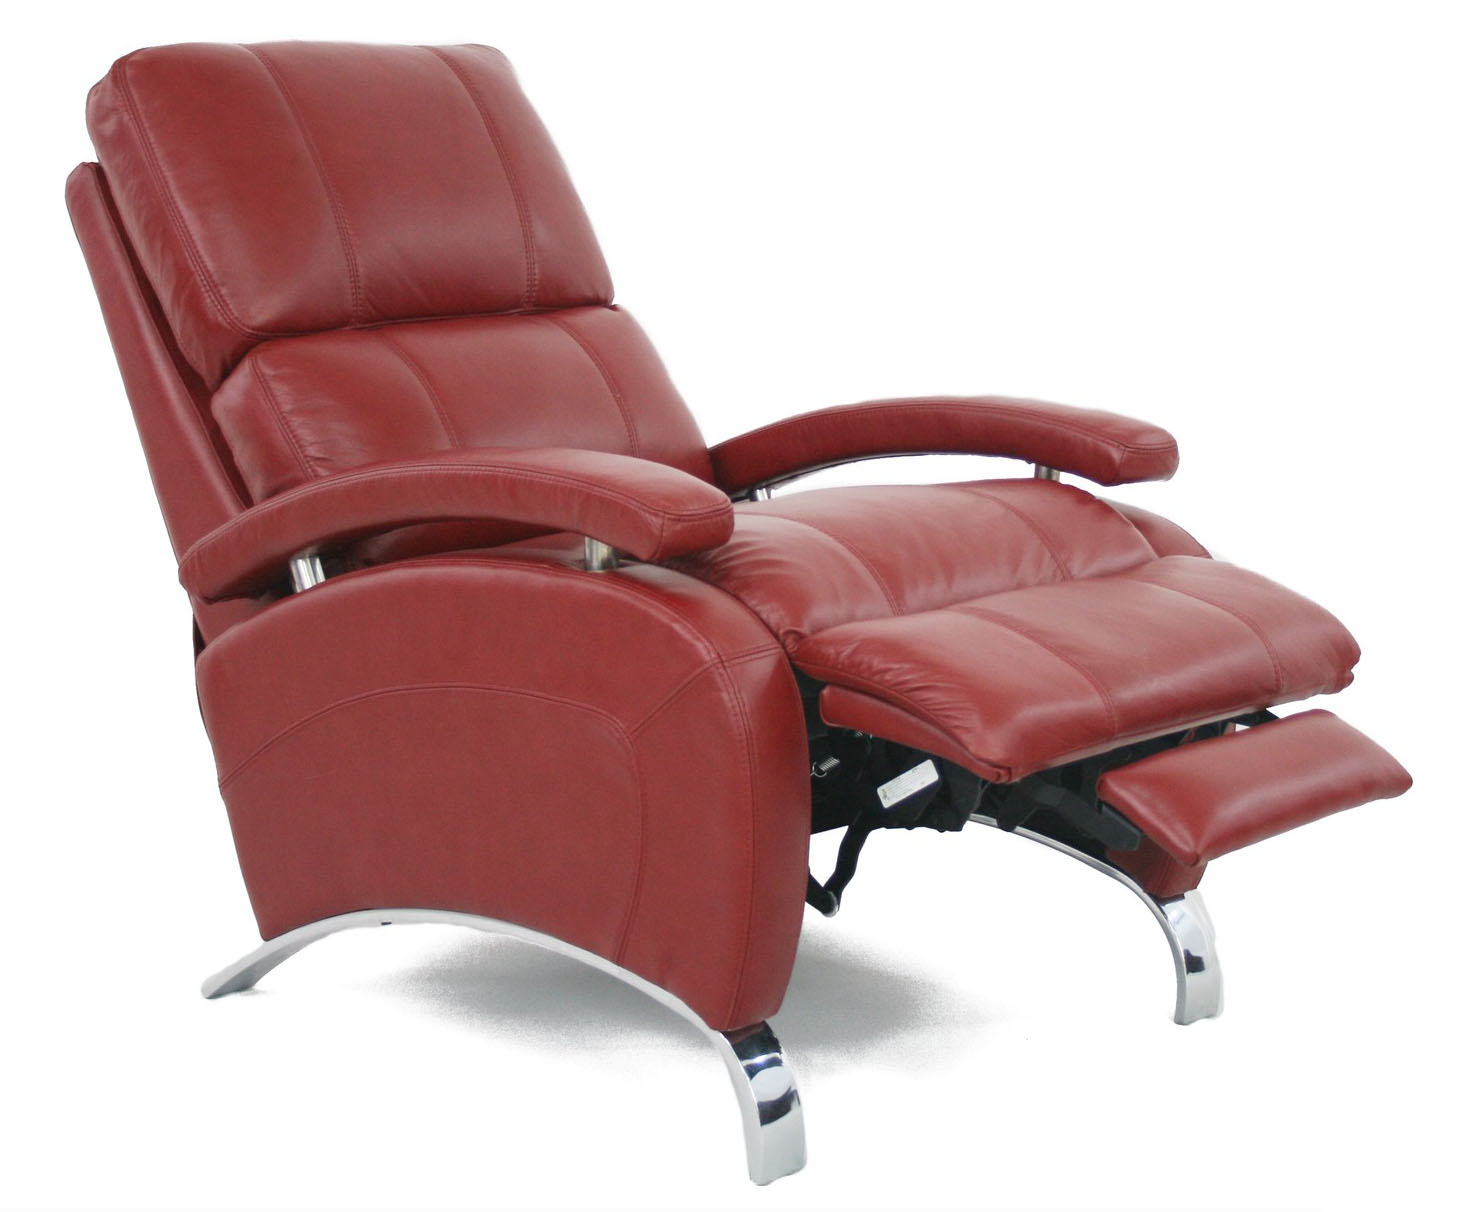 Barcalounger Oracle II Leather Recliner Chair  sc 1 st  Vitalityweb.com & Barcalounger Oracle II Recliner Chair - Leather Recliner Chair ... islam-shia.org